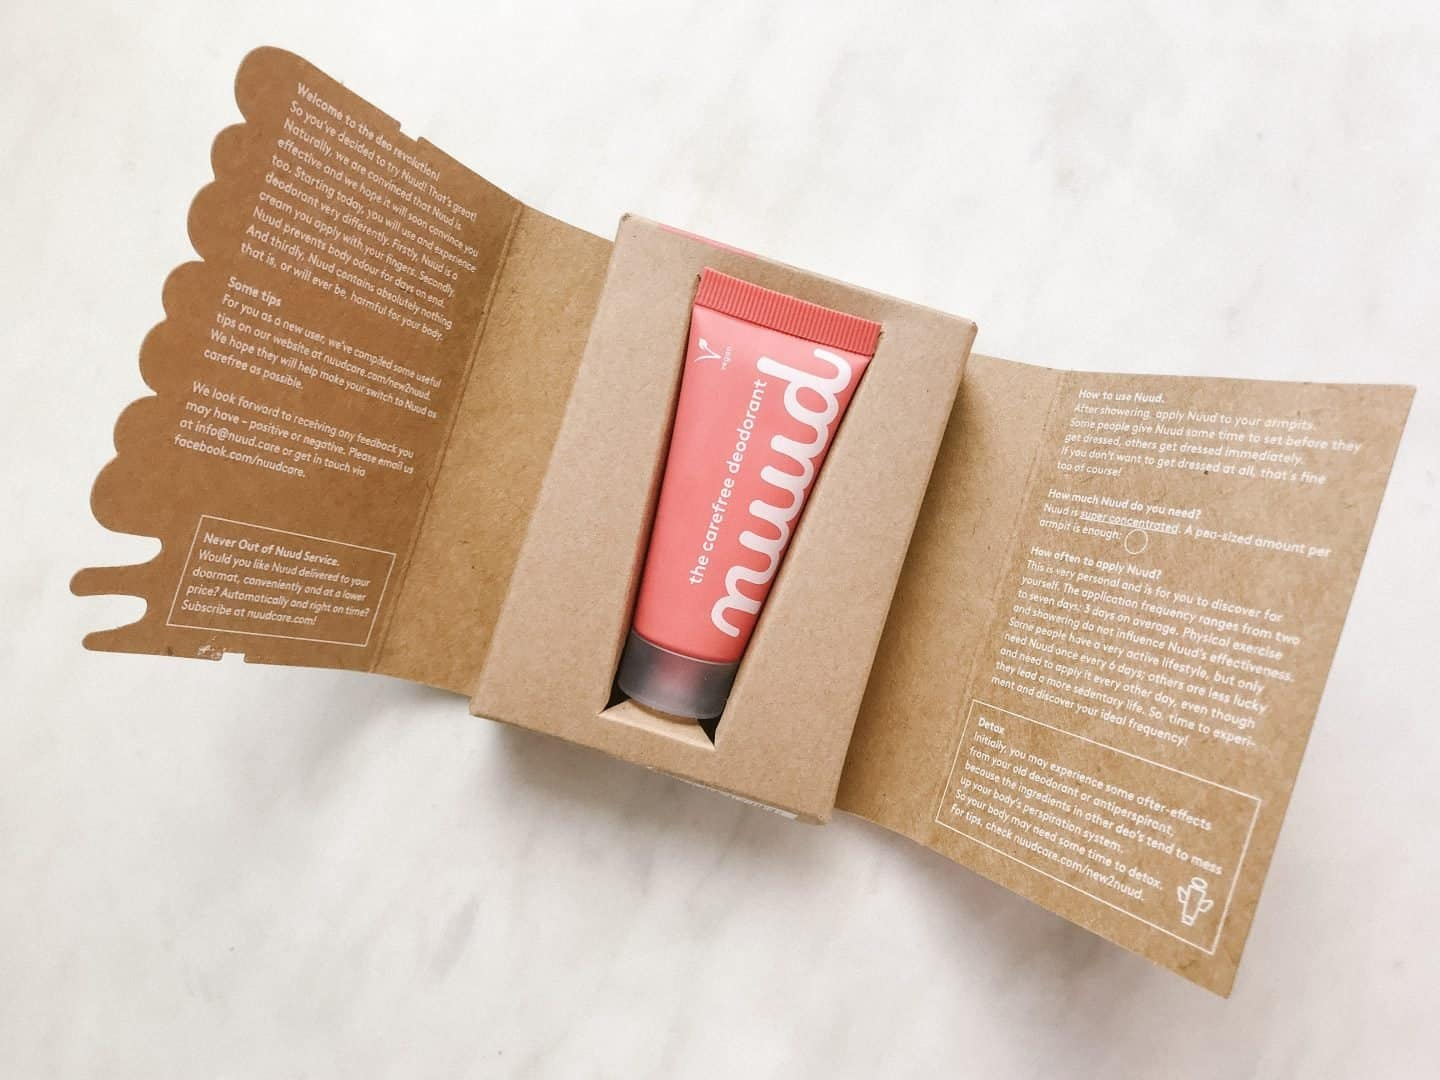 Nuud Zero Waste Natural Deodorant Packaging